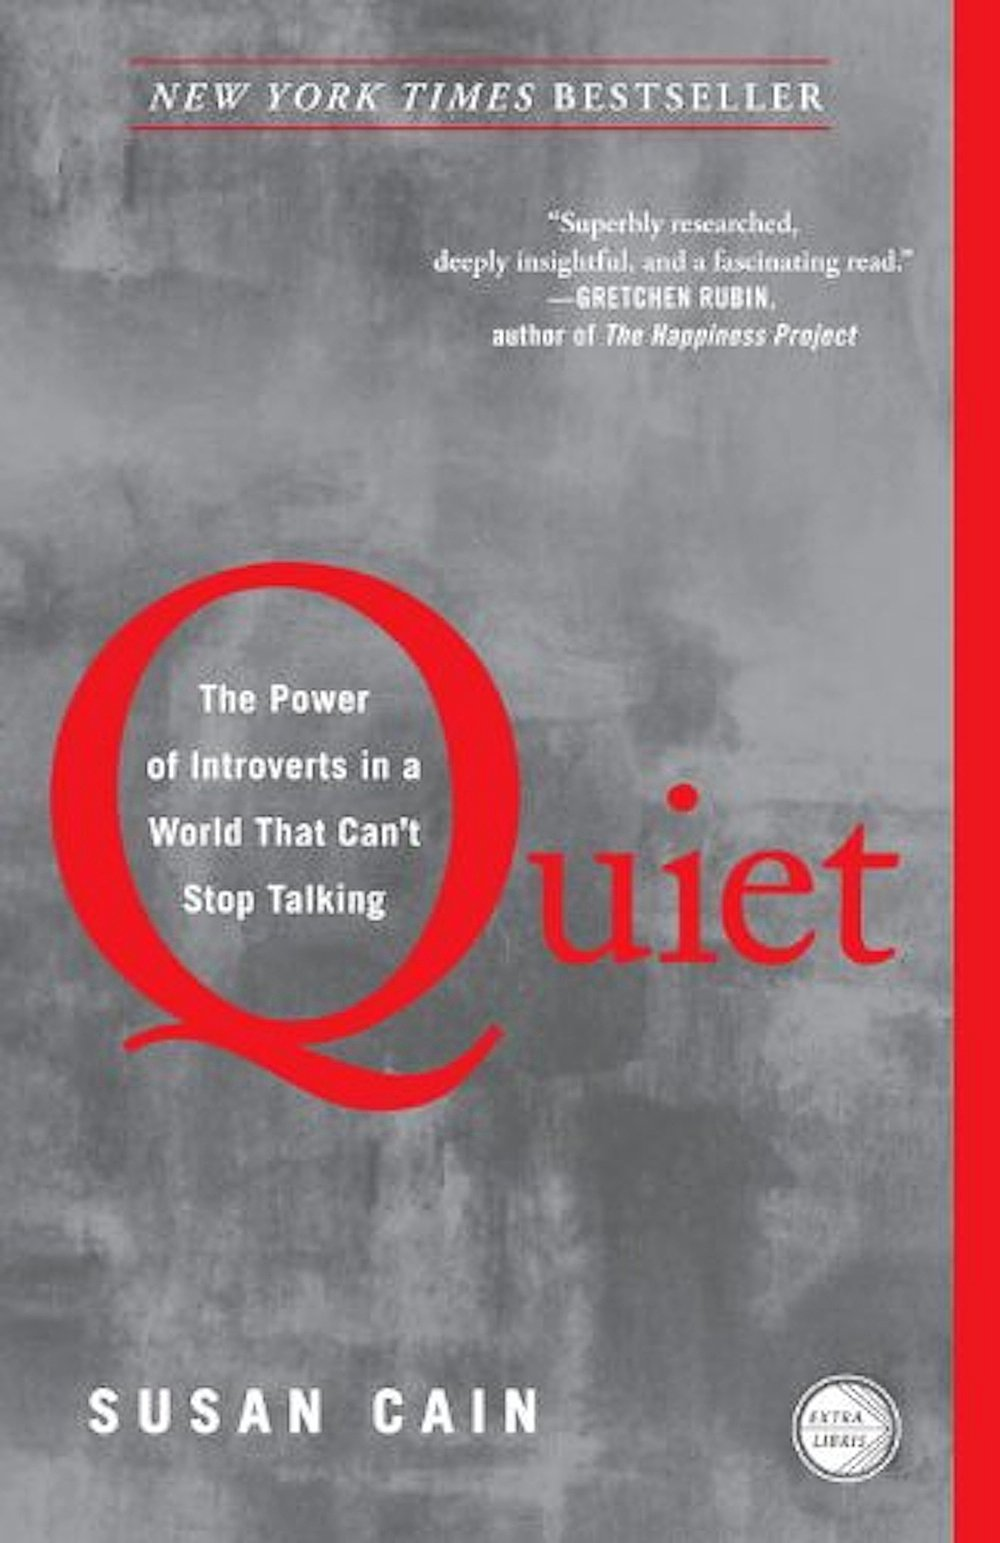 quiet-by-susan-cain